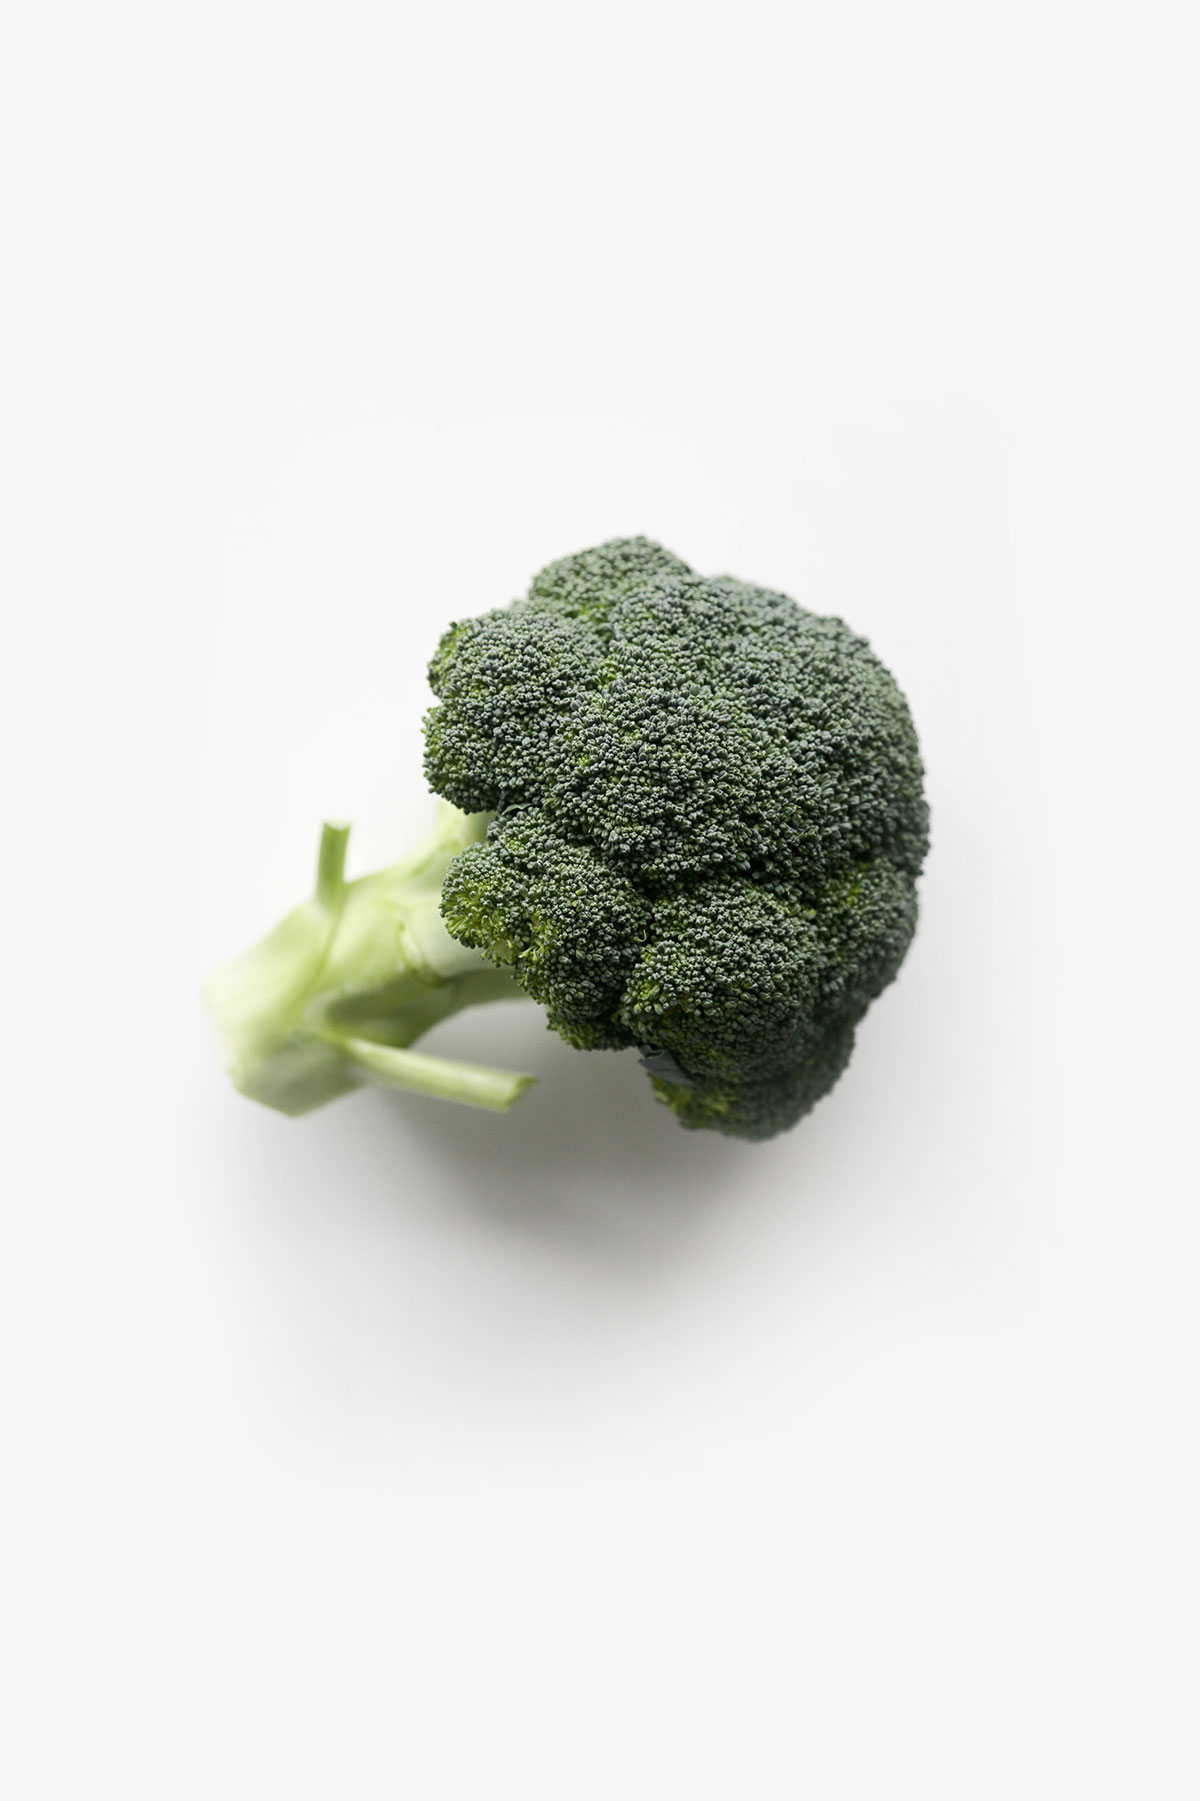 Keto Broccoli, a guide to keto foods for low carb. keto, keto ingredients, keto foods, keto produce, keto vegetables, ketogenic diet, keto shopping list, low carb, low carb foods, low carb vegetables, lchf, lchf foods